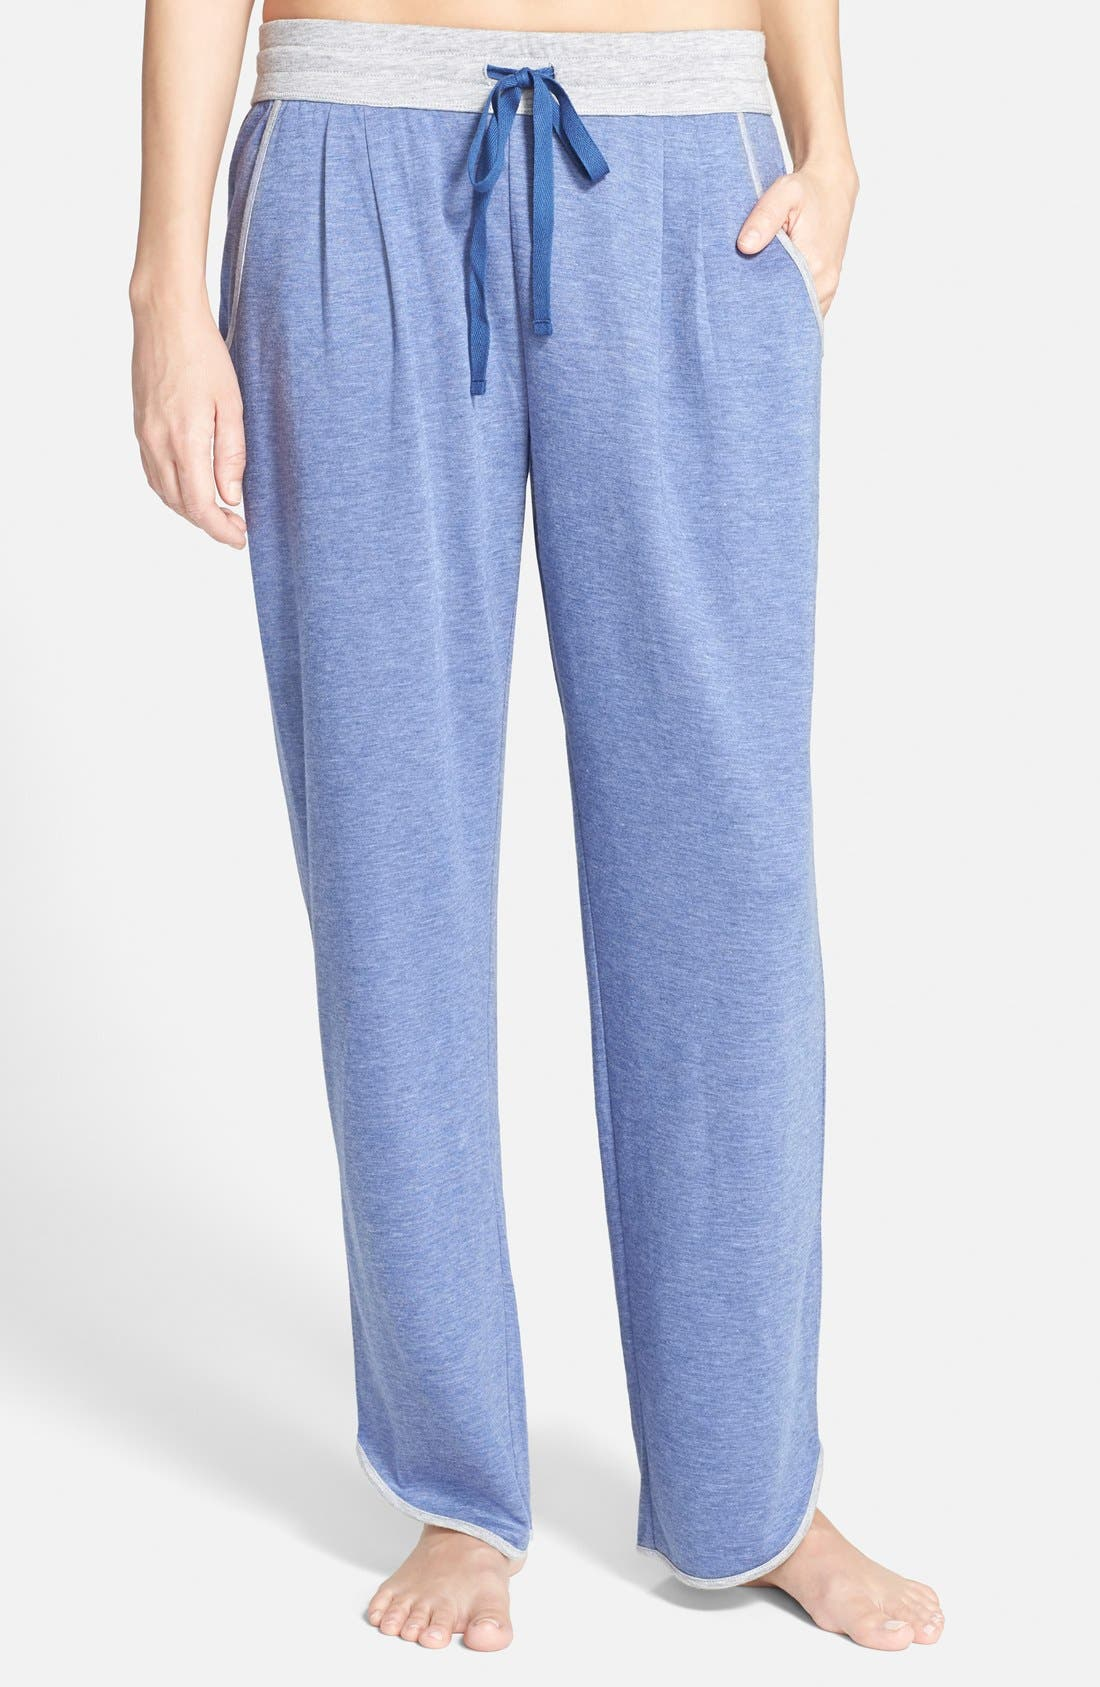 Alternate Image 1 Selected - Carole Hochman Designs Ankle Lounge Pants